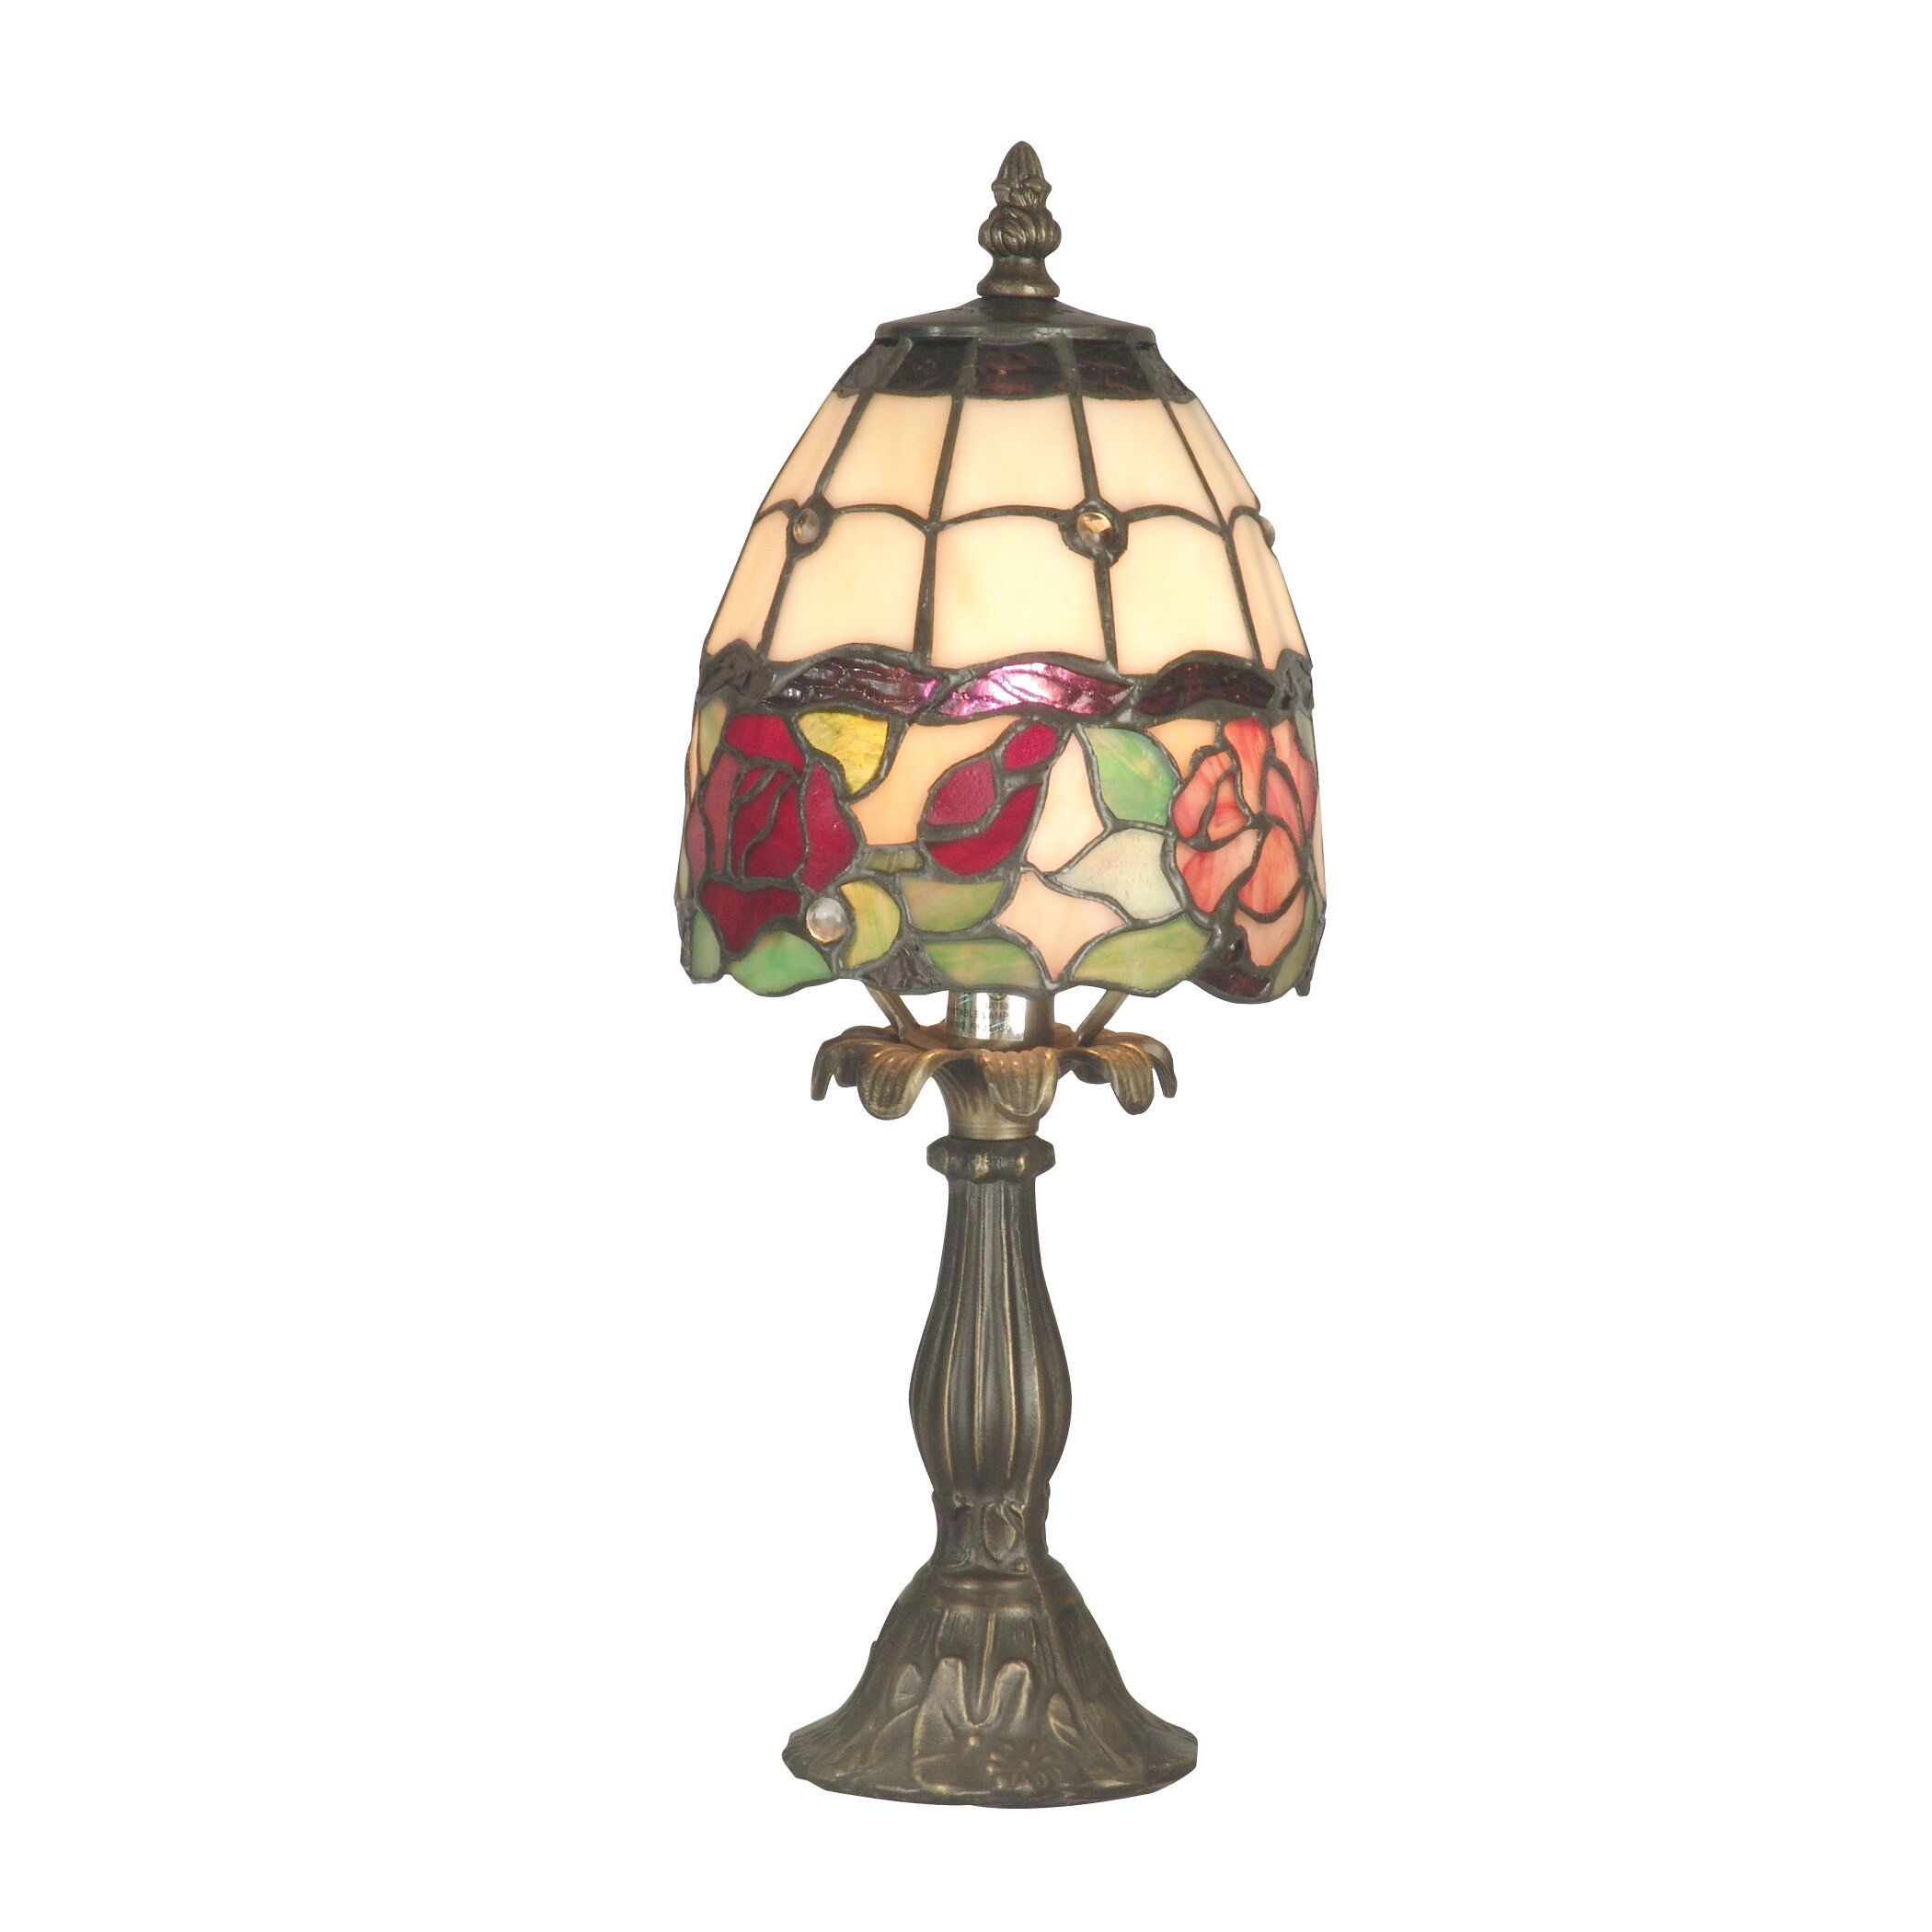 lighting lamps table lamps dale tiffany sku dt2266. Black Bedroom Furniture Sets. Home Design Ideas